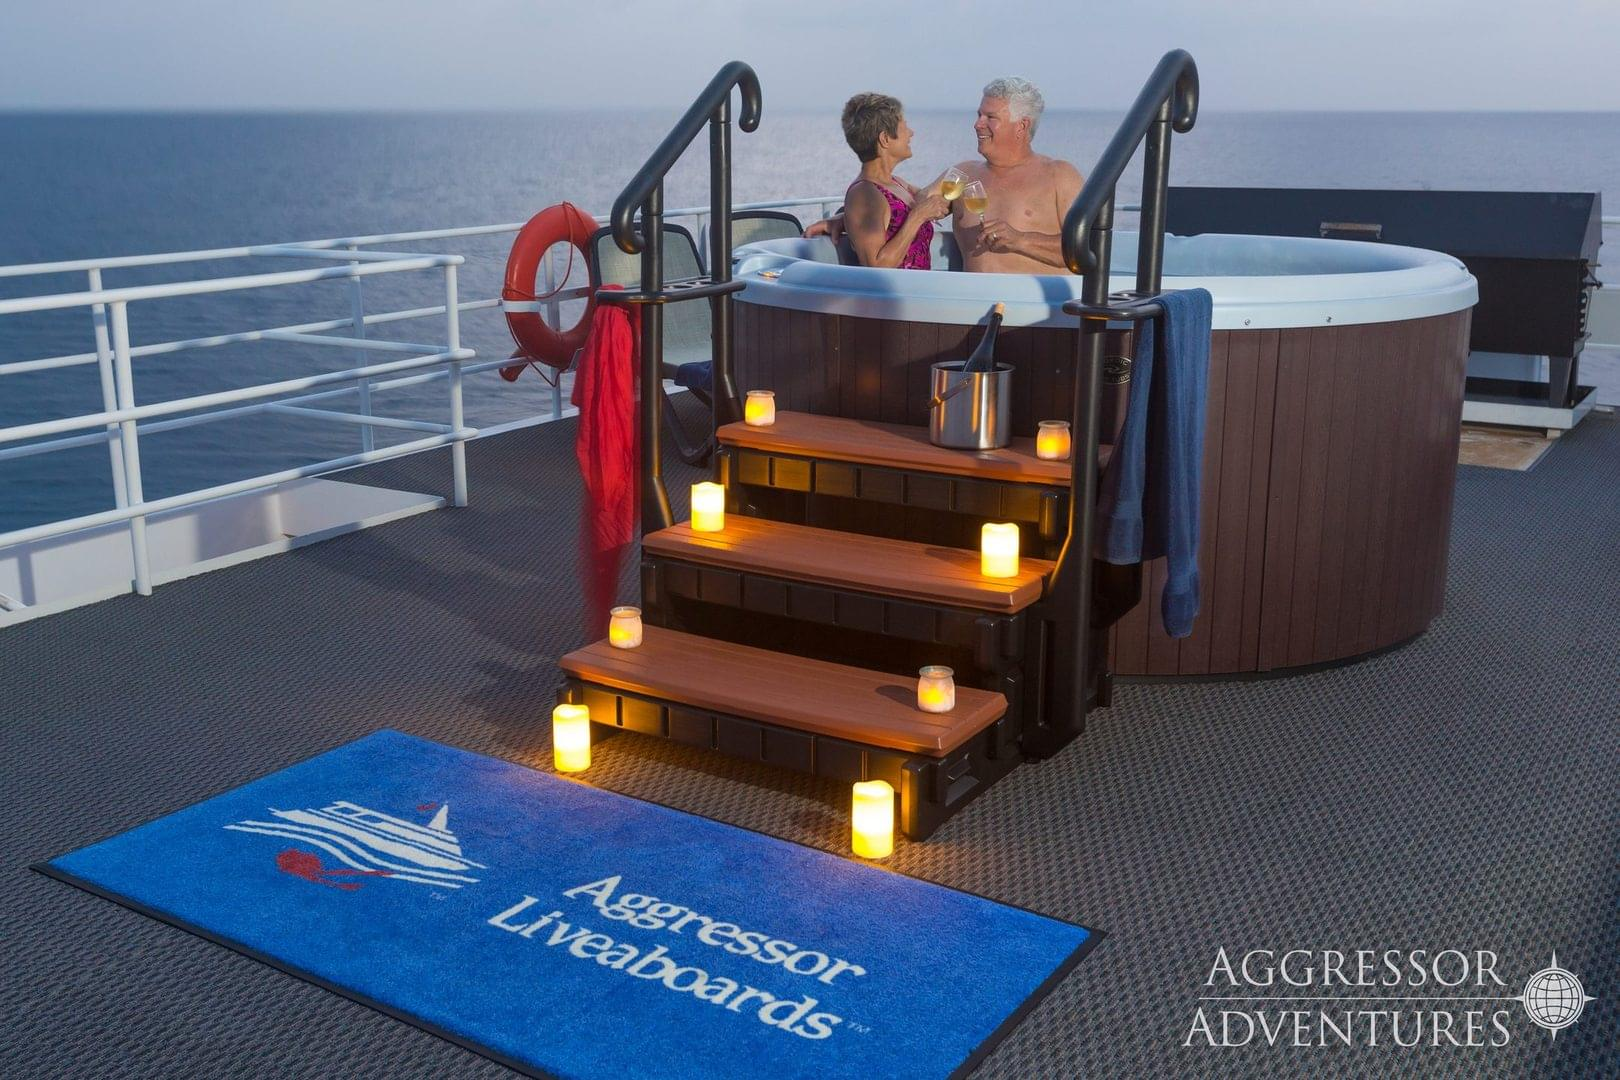 Couple sitting in hot tub on Cayman Aggressor V